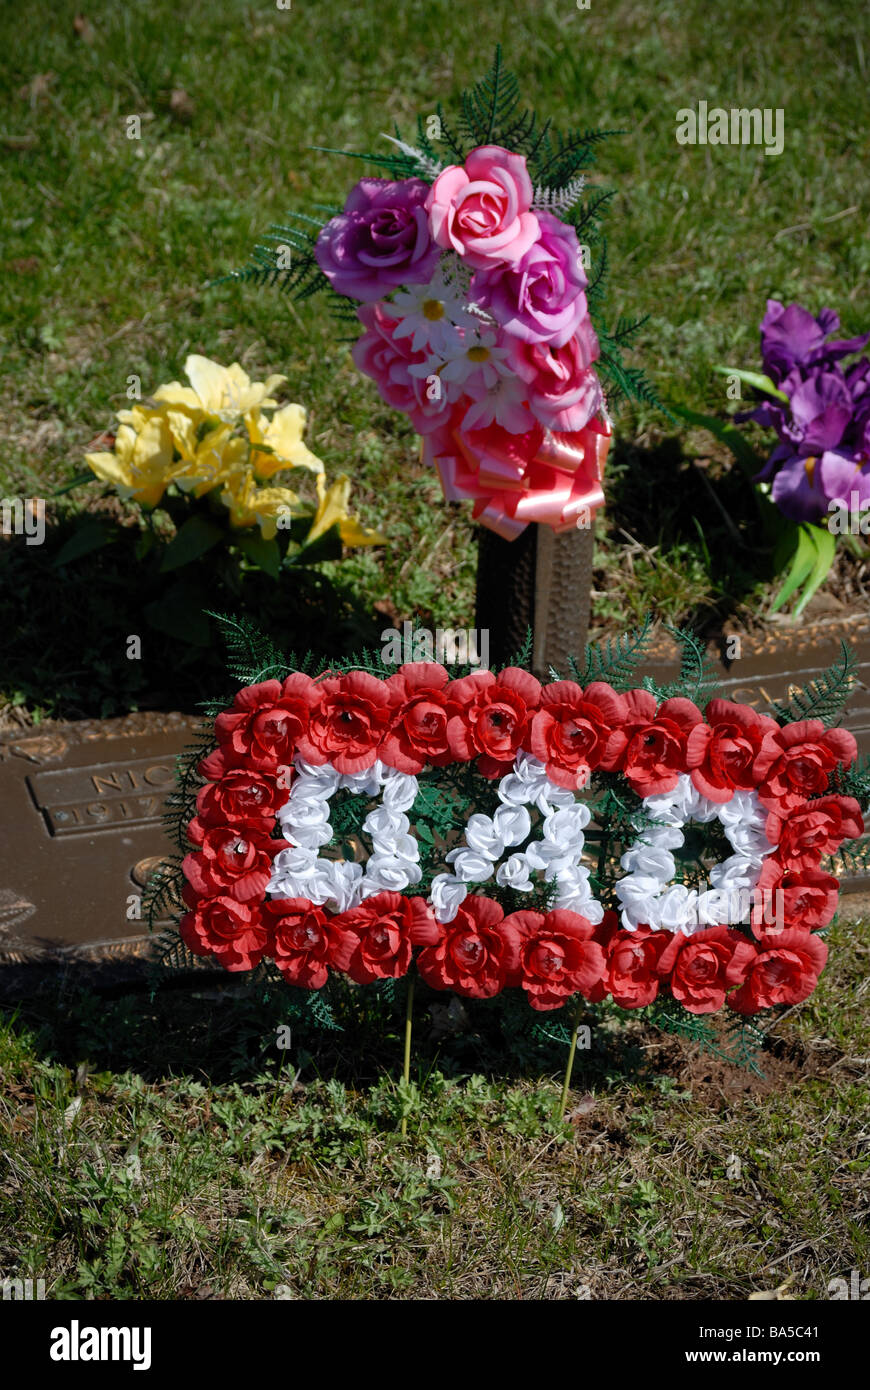 Funeral flowers dad stock photos funeral flowers dad stock images flowers and a dad memento decorate a grave in allegheny cemetery pittsburgh izmirmasajfo